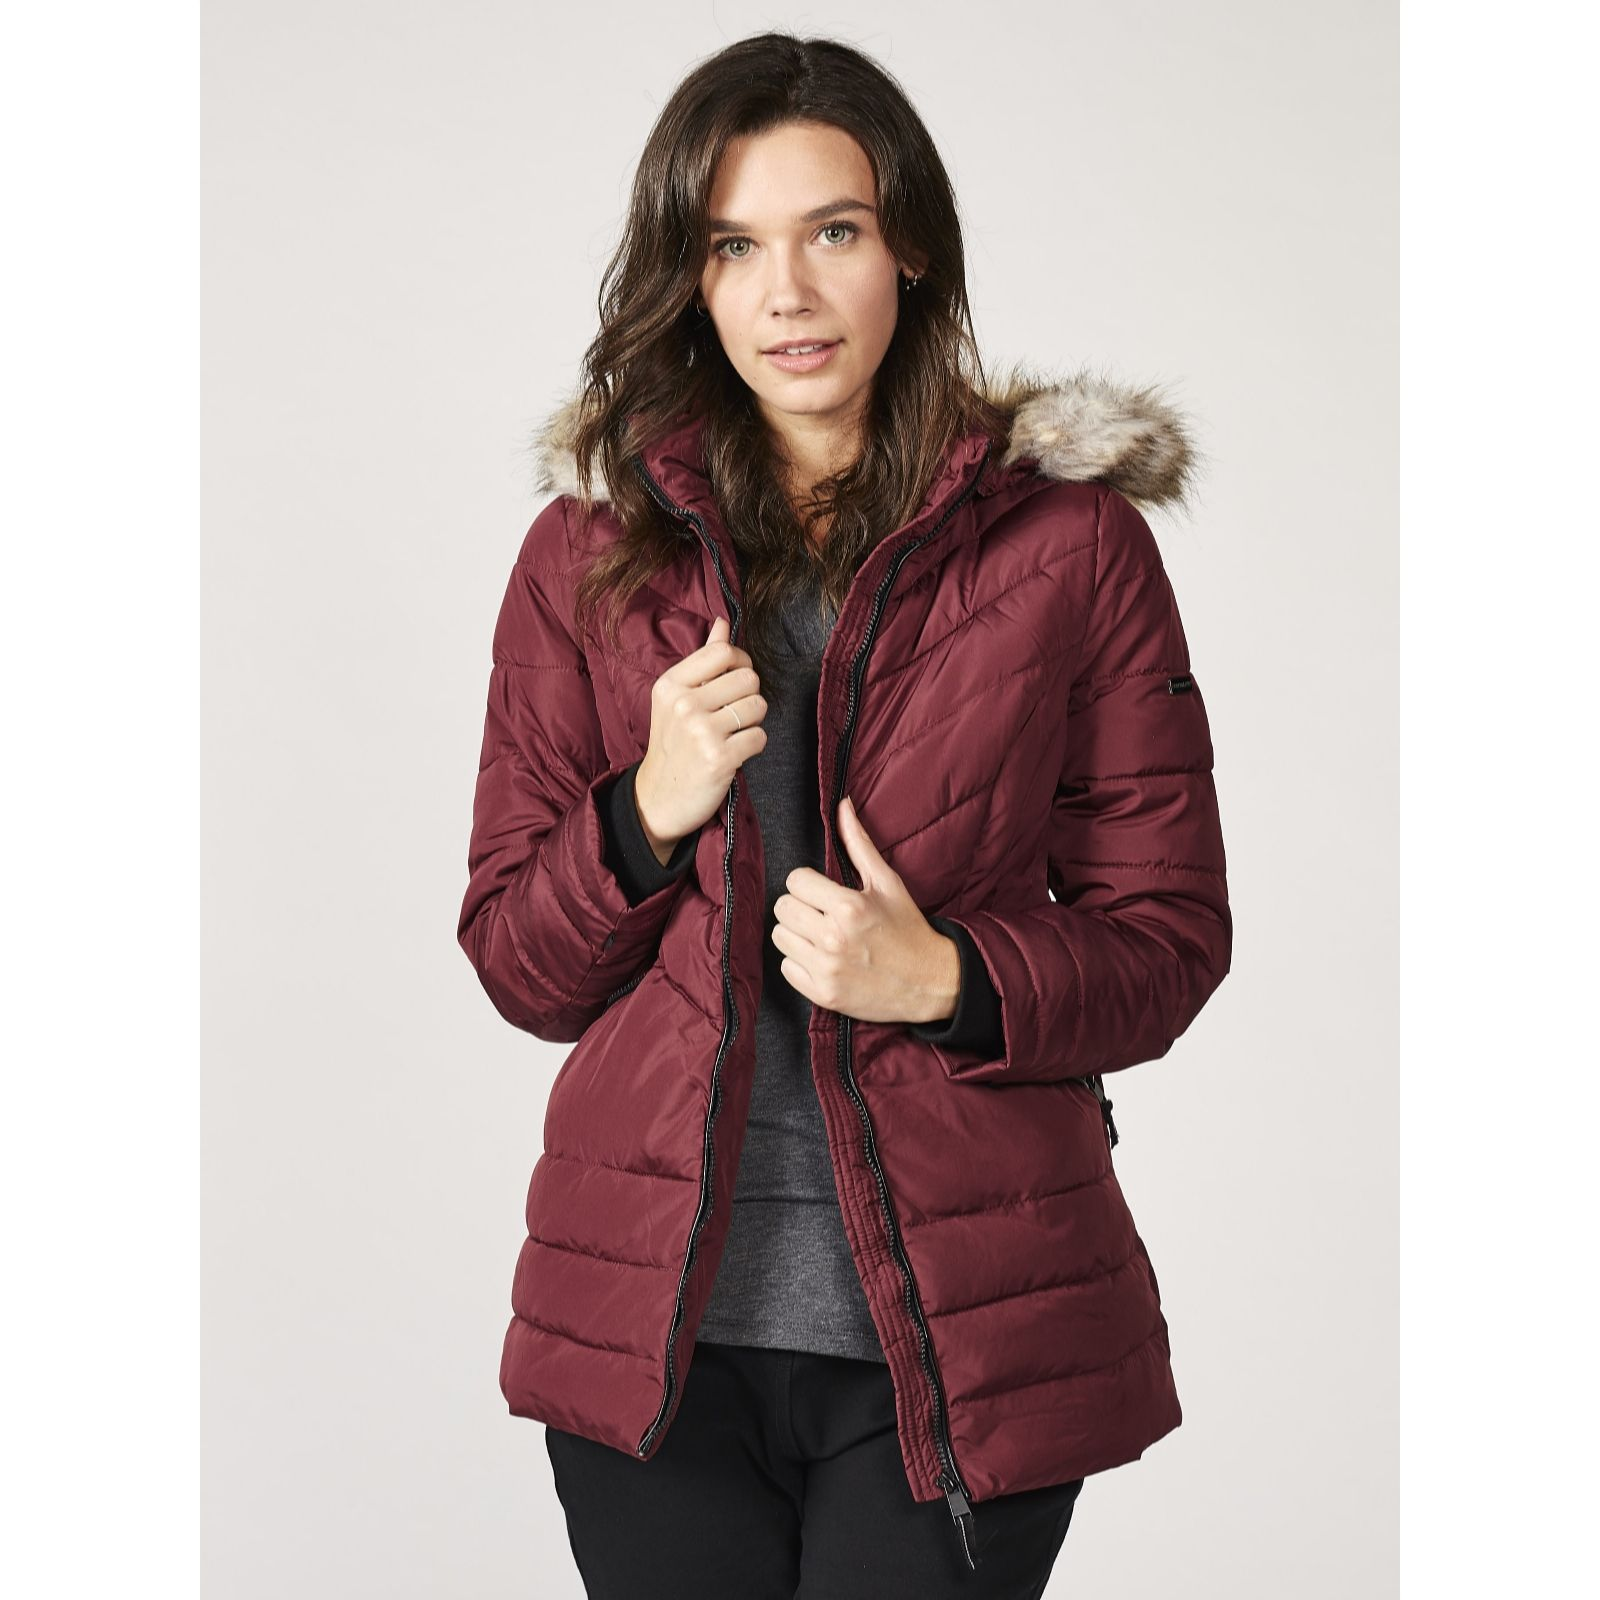 7e6afbc32b517 Centigrade Quilted Faux Fur Hooded Jacket - QVC UK